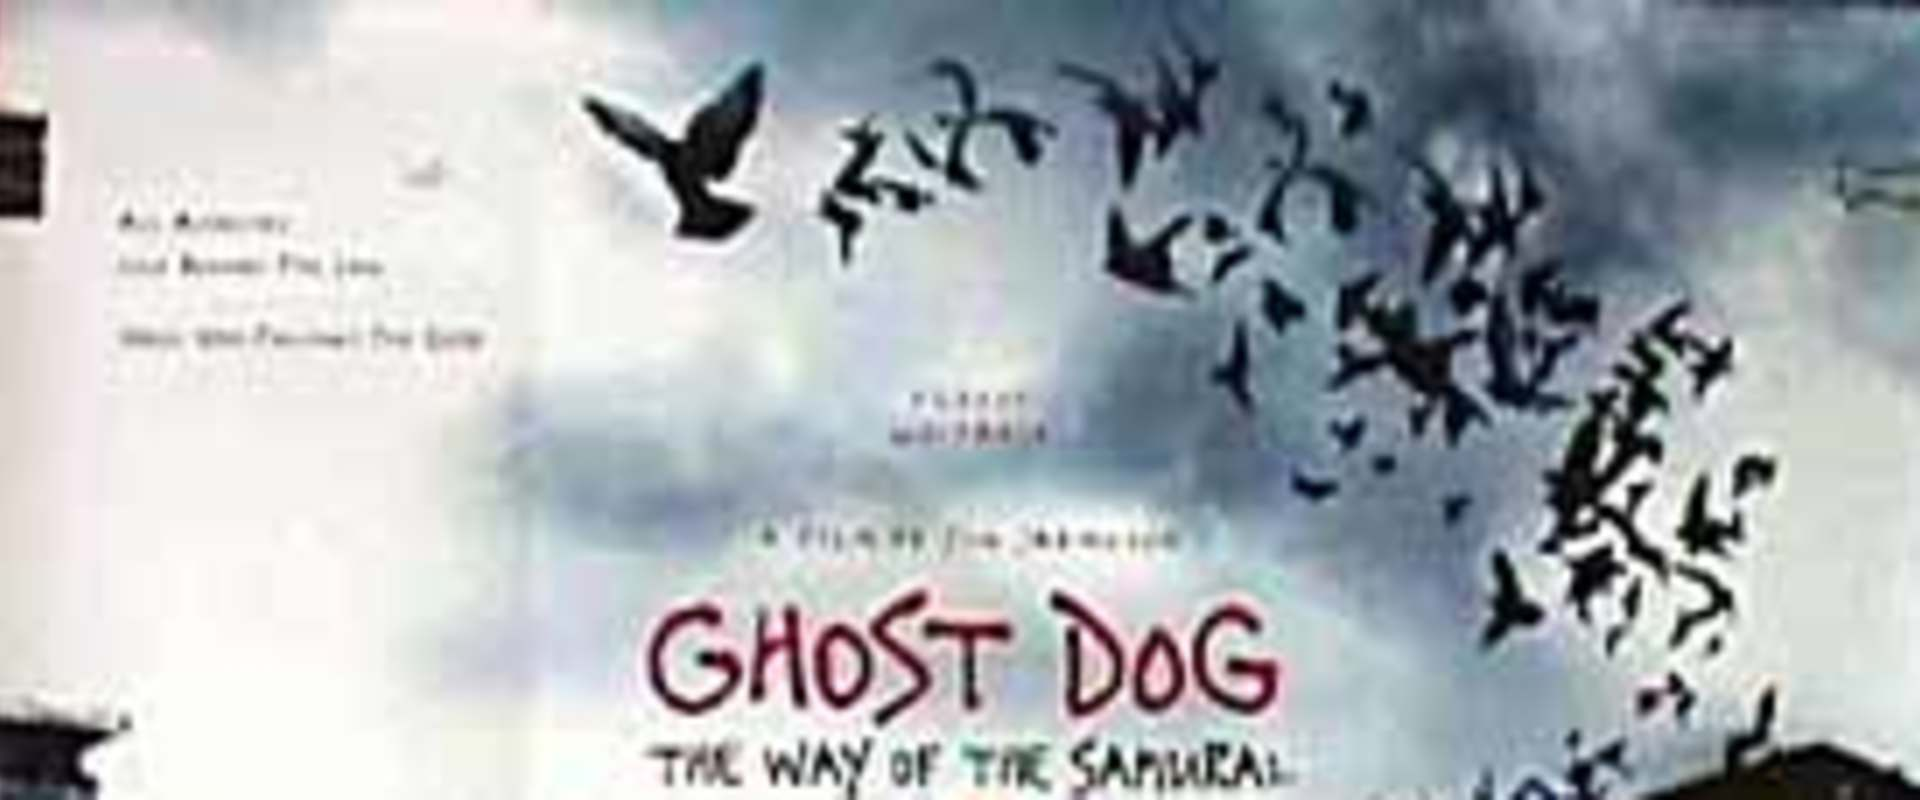 Ghost Dog: The Way of the Samurai background 2